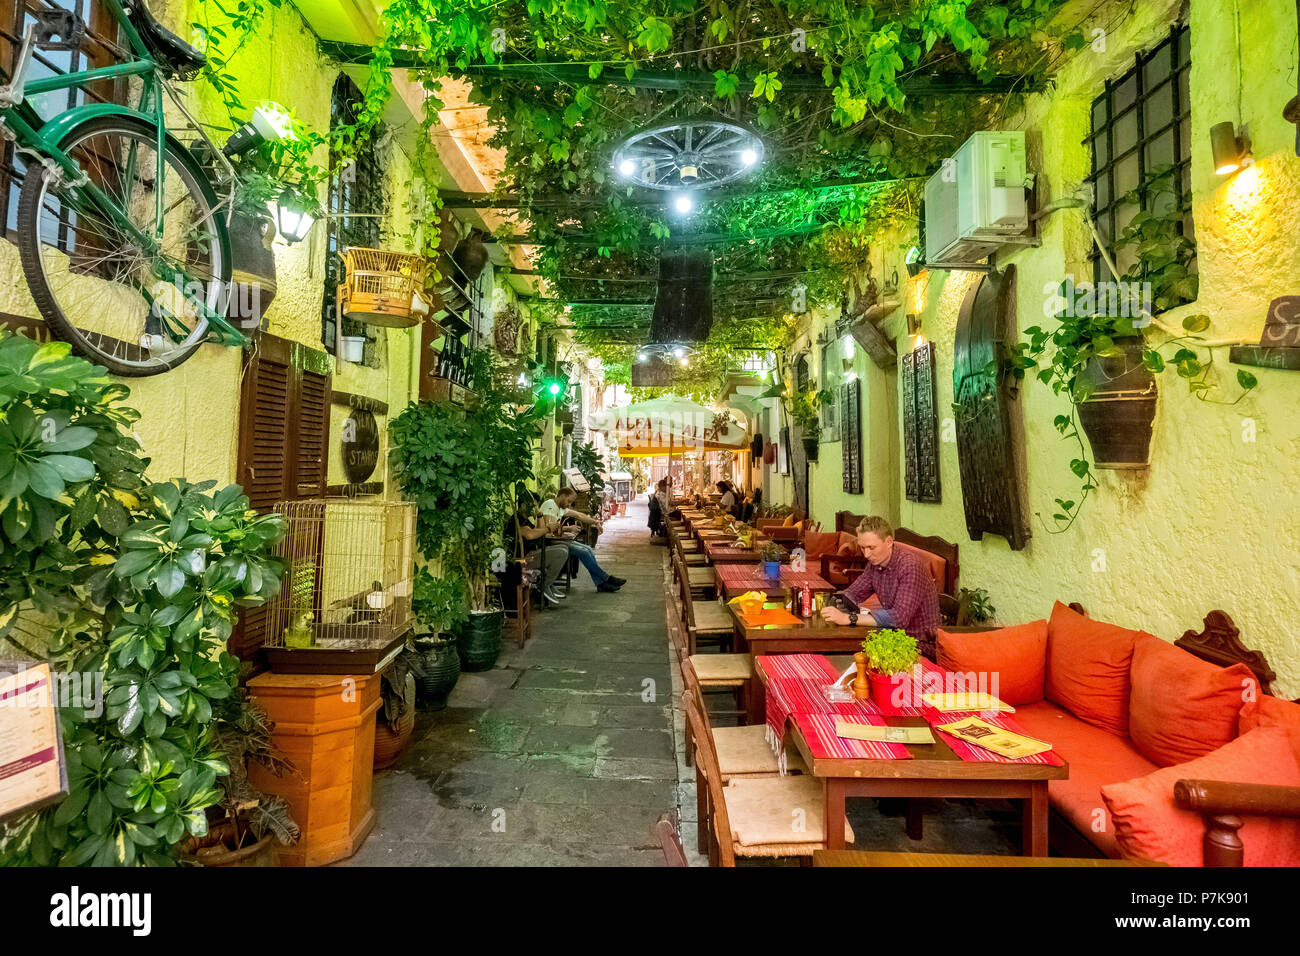 Restaurant, tavern in an alley in the old town of Rethymno, vine leaves and red sofas, Europe, Crete, Greece - Stock Image